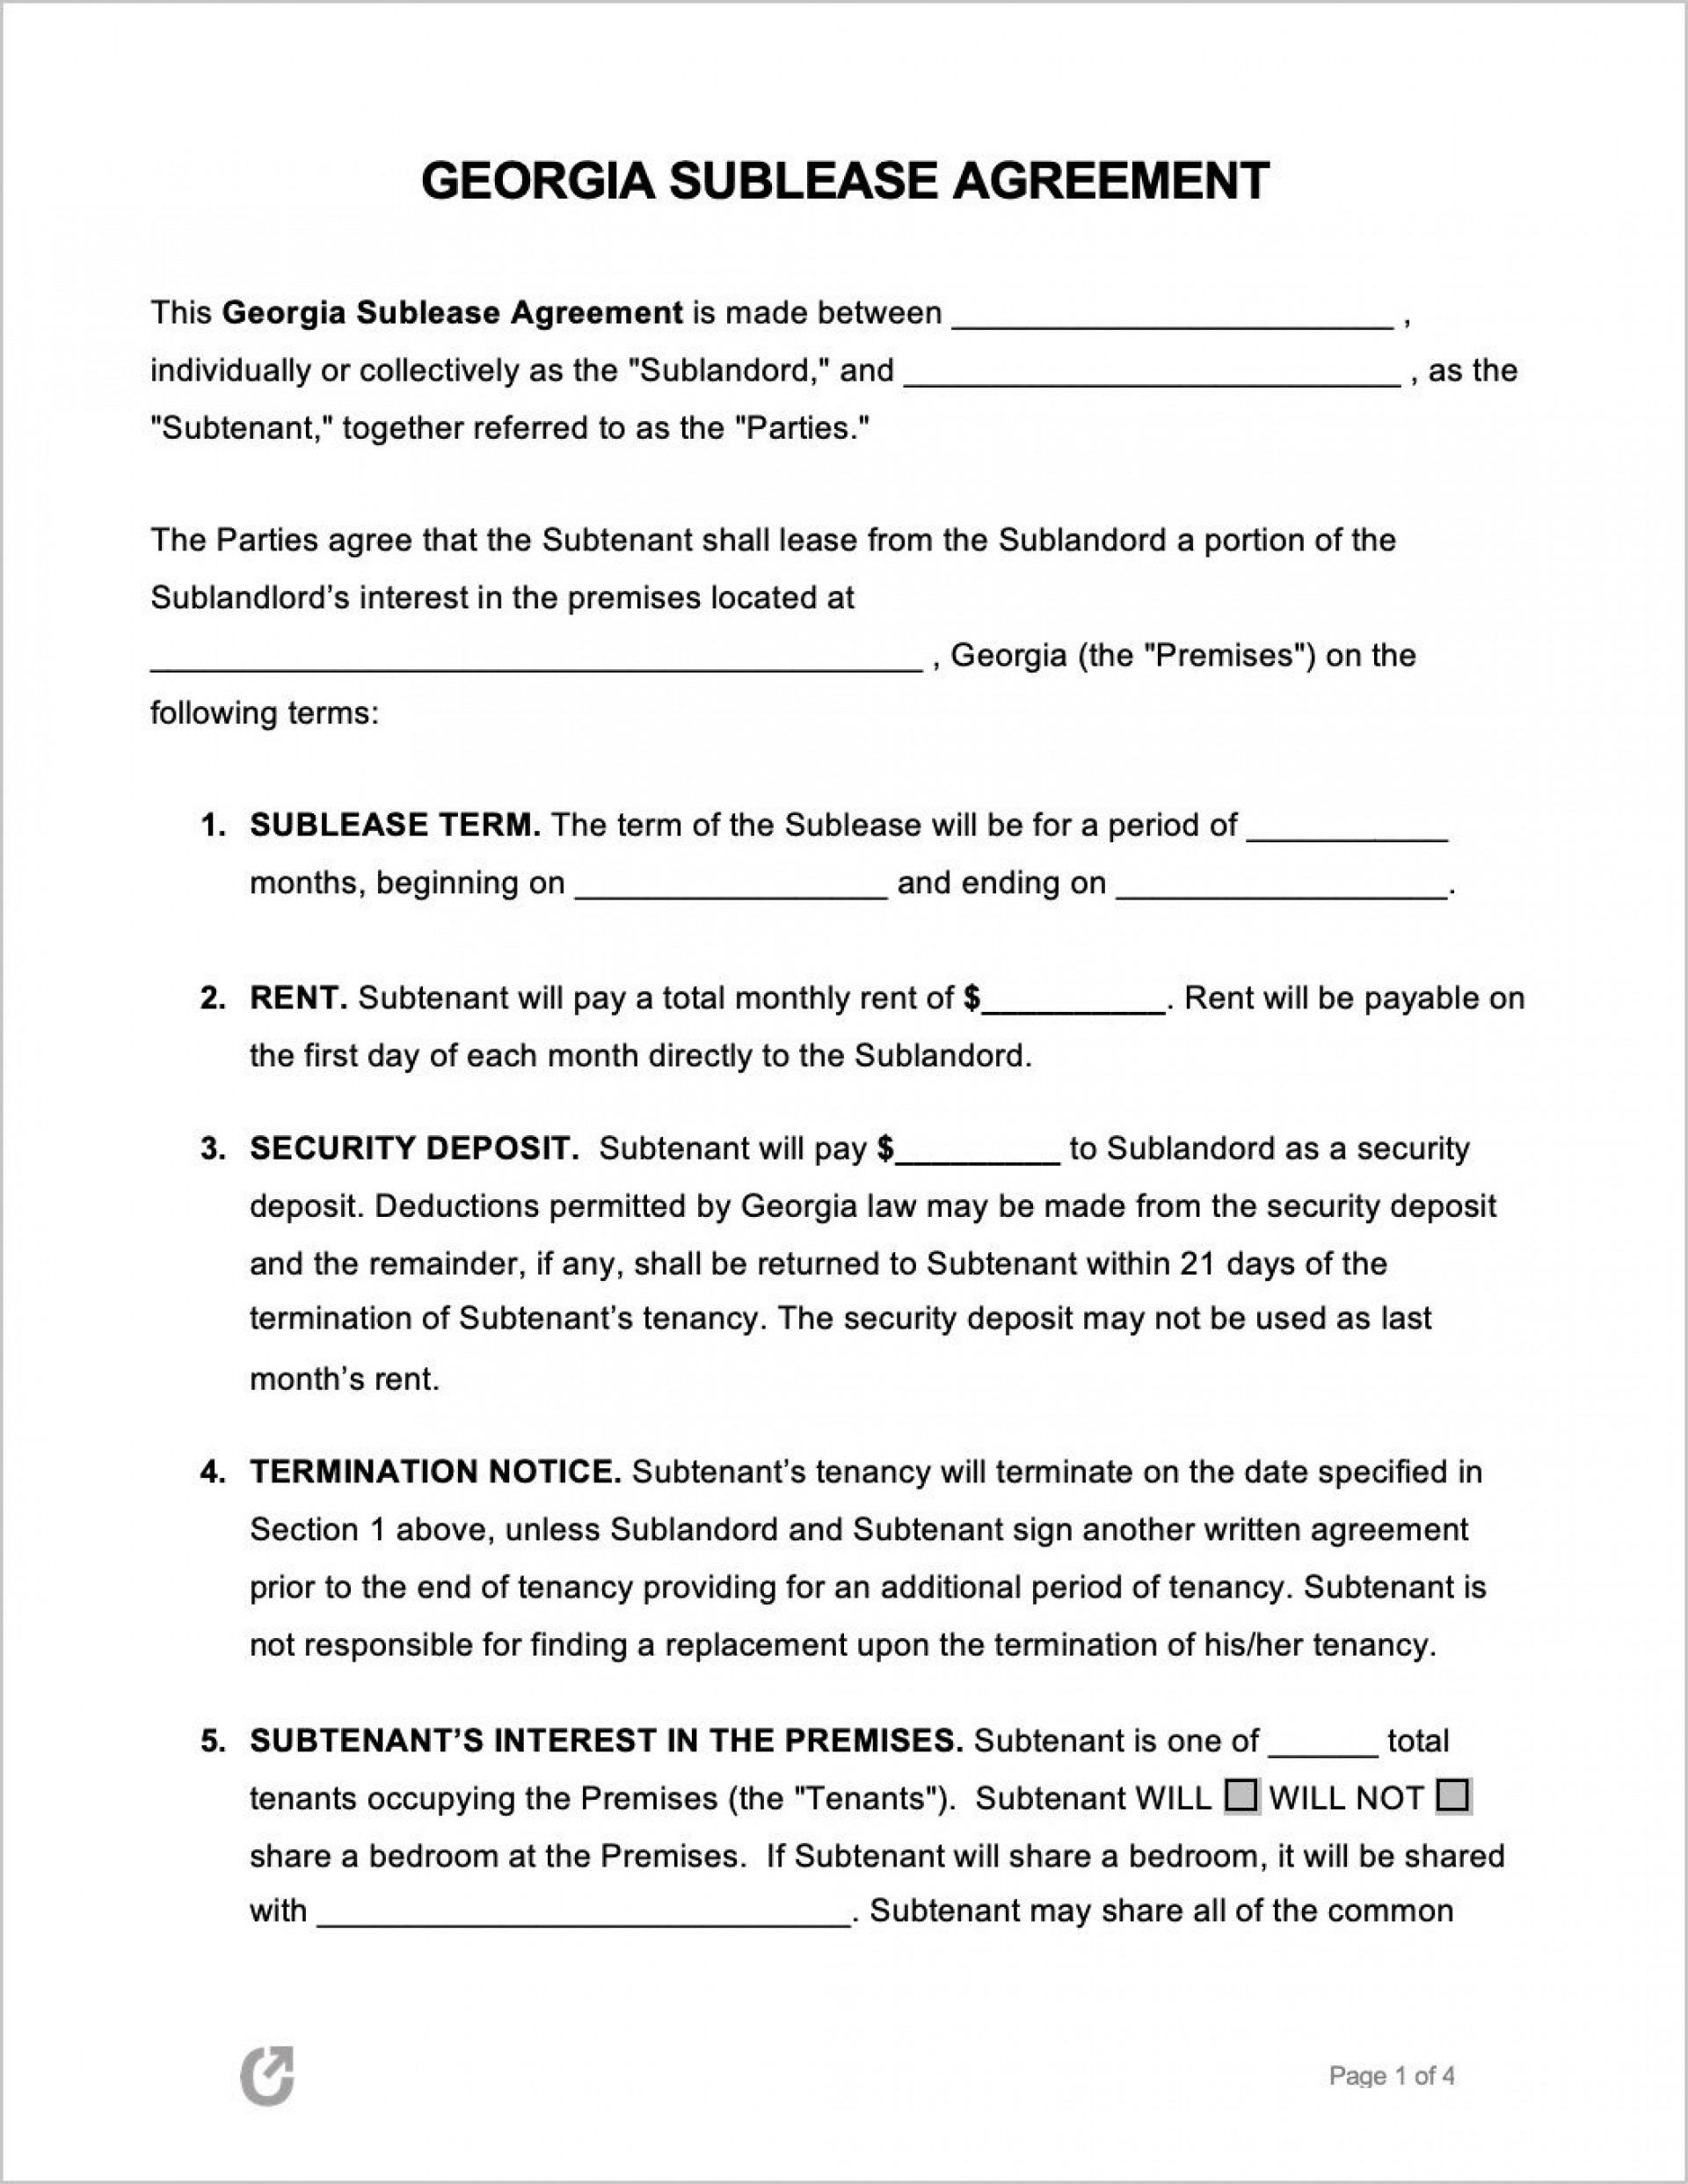 004 Unusual Free Sublease Agreement Template High Resolution  Lease Word South Africa1920